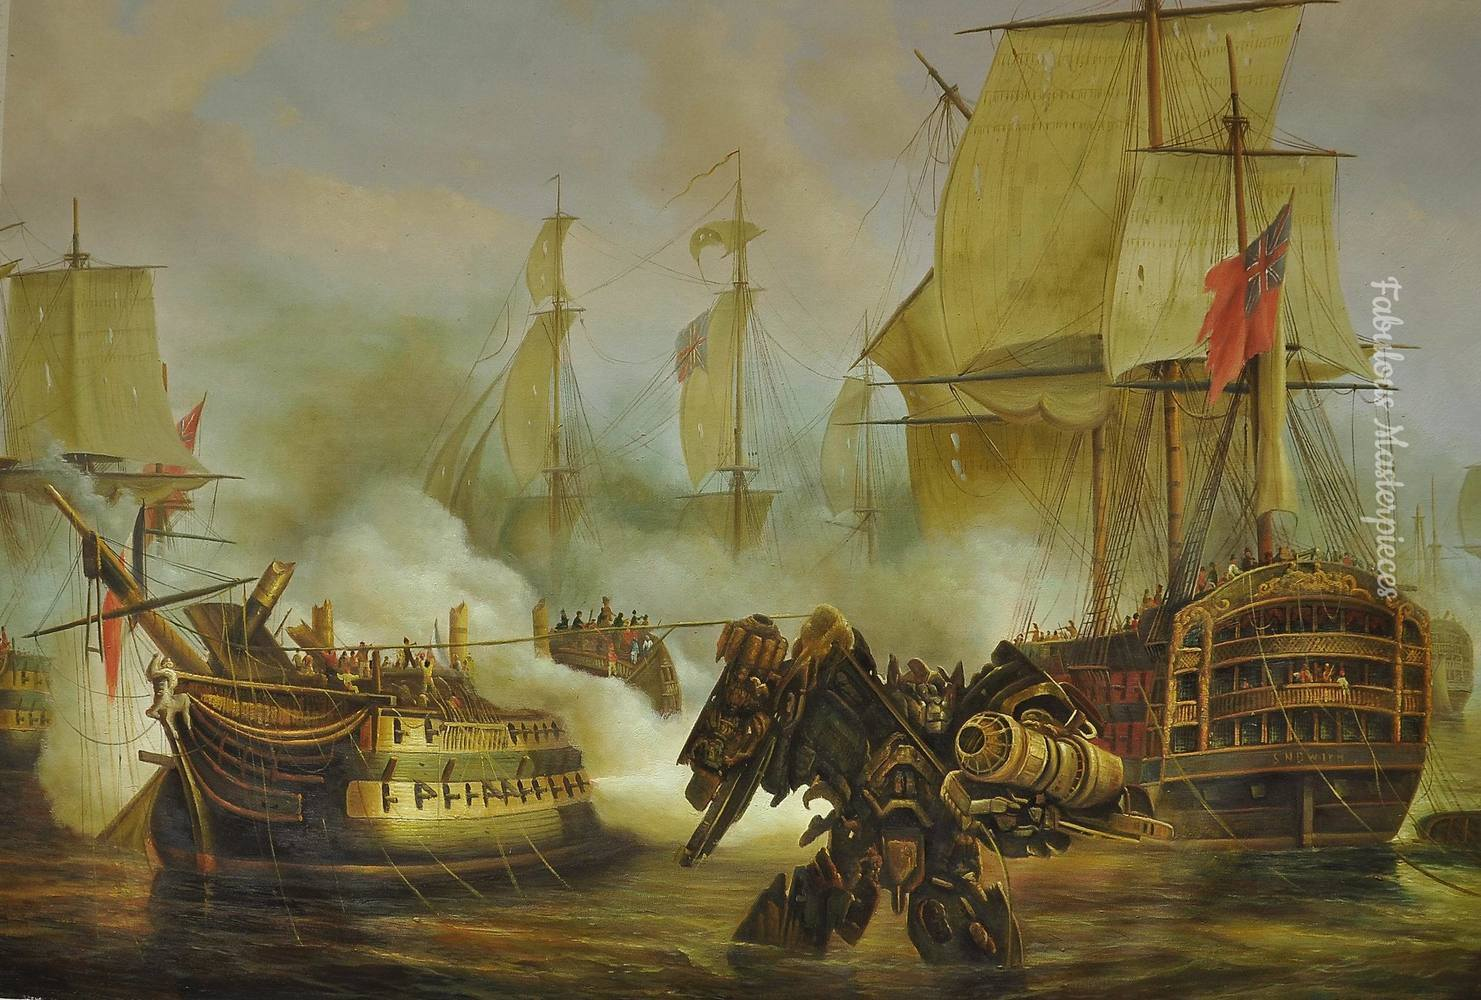 Transformer in Battle of Trafalgar